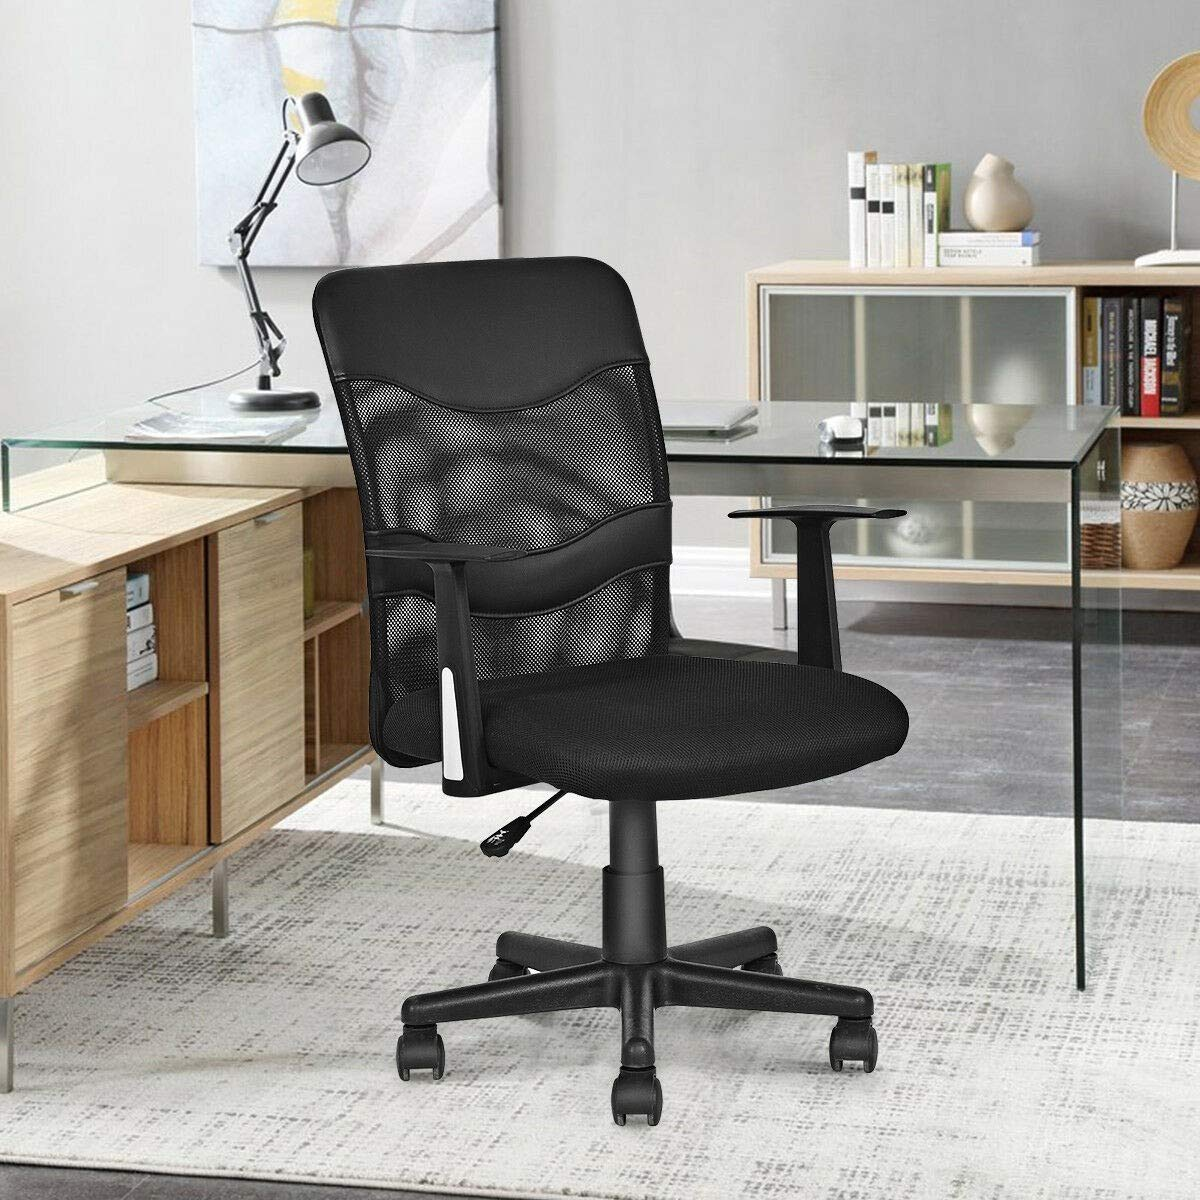 Managerial Chair 5 Caster Wheel 360 Degree Swivel Backrest Armrest Breathable Back Airflow Guest Reception Drafting Game Home Office Recreation Room Computer Workstation Sturdy Capacity 264 Pound